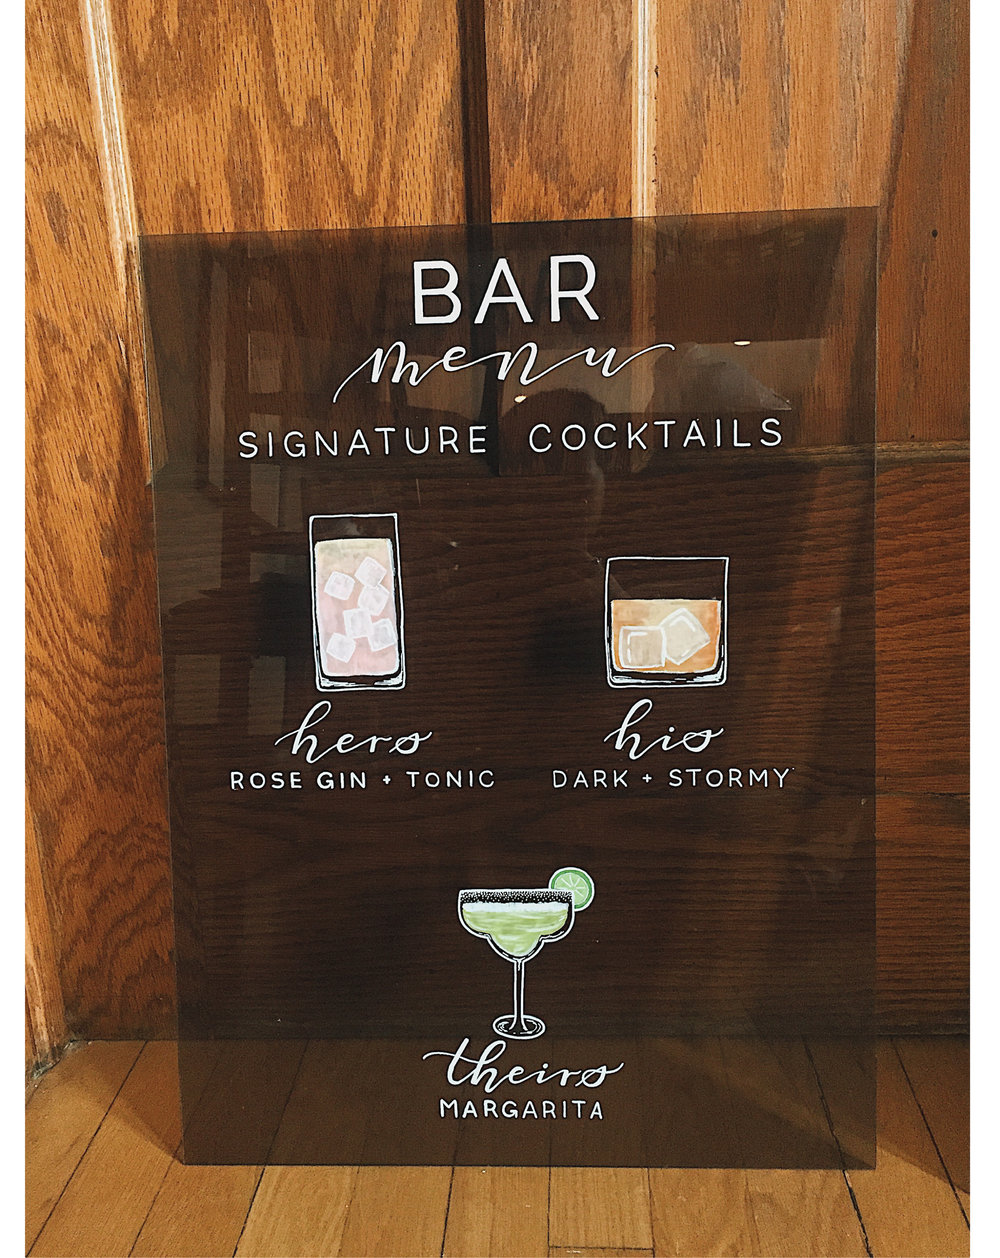 Acrylic-Bar-Menu-Illustration-Padded.jpg